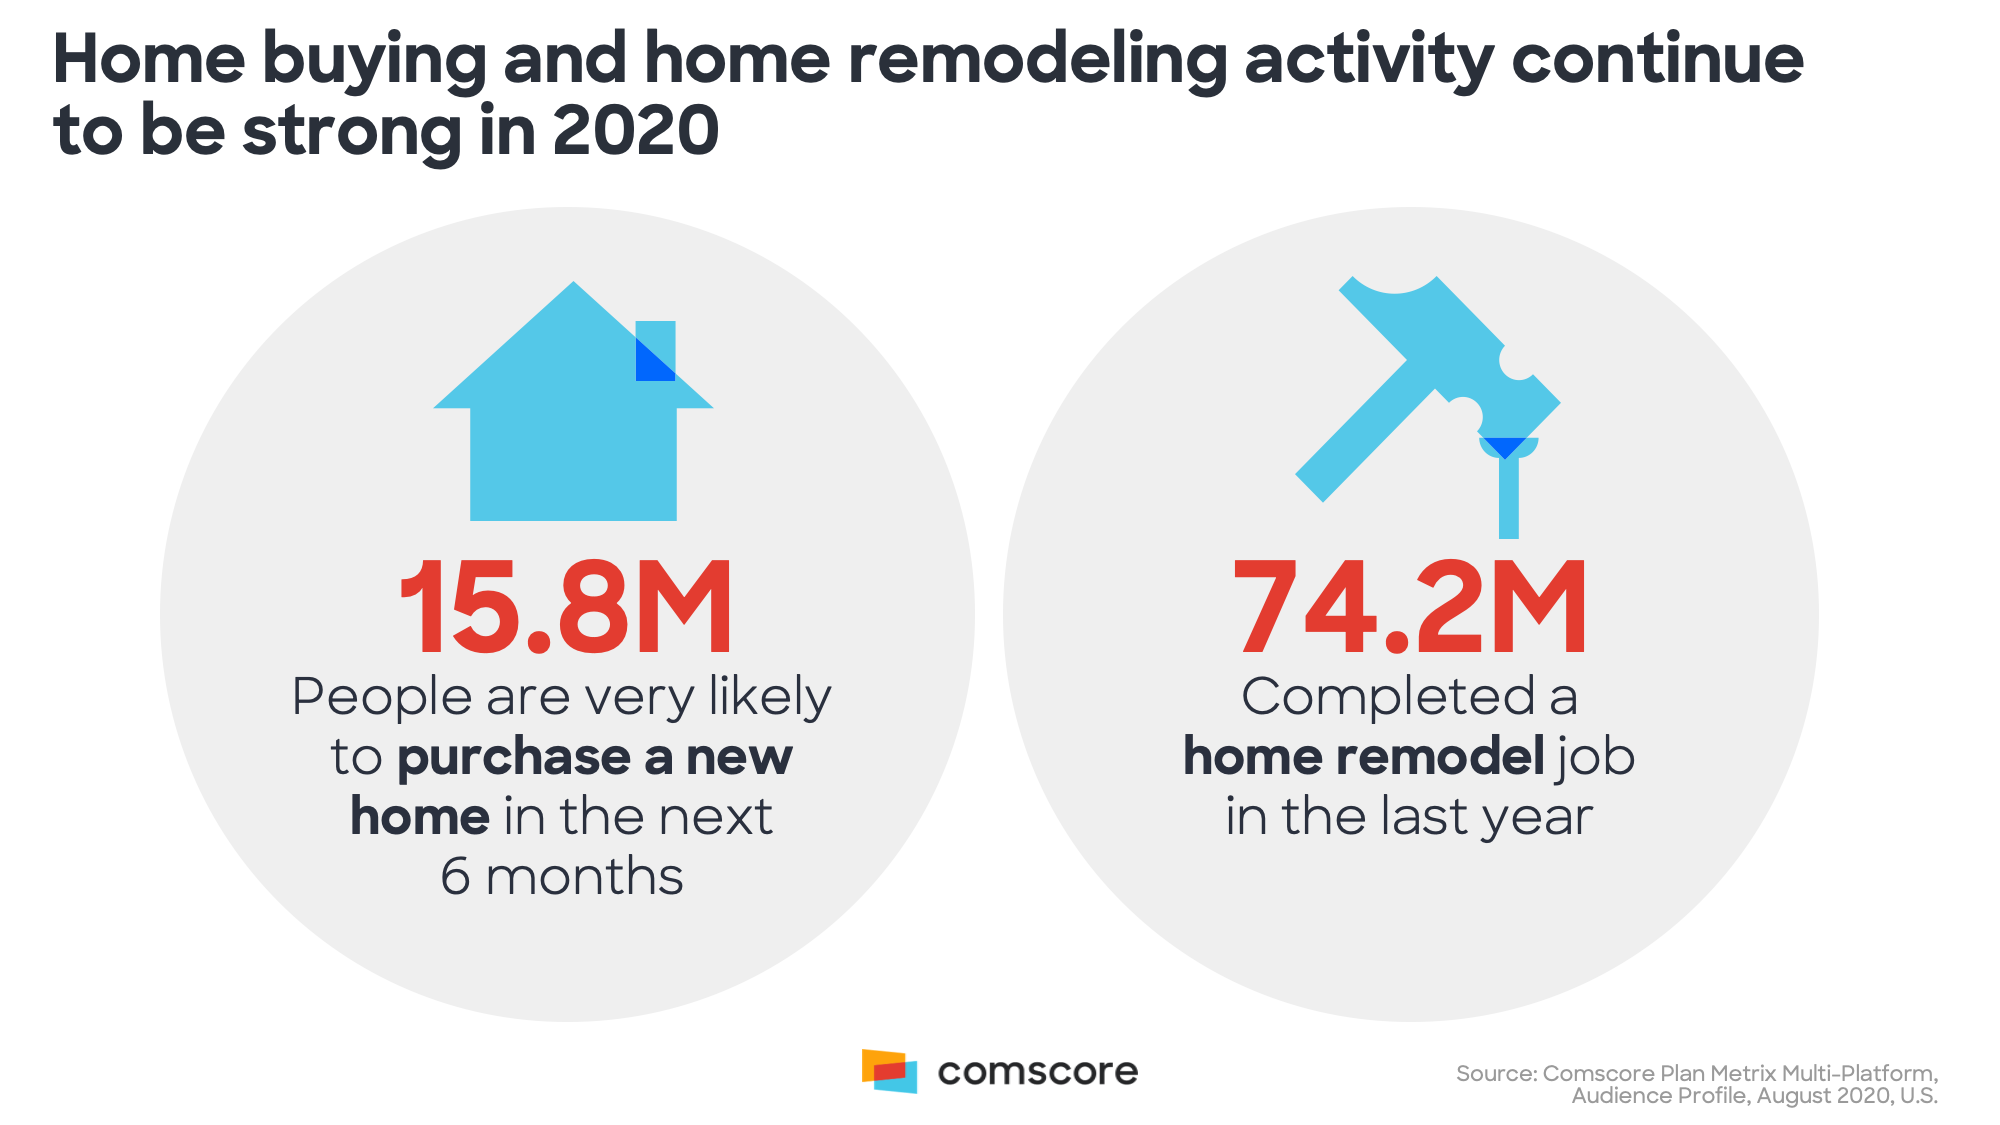 Home Buying and Home Remodeling Activity